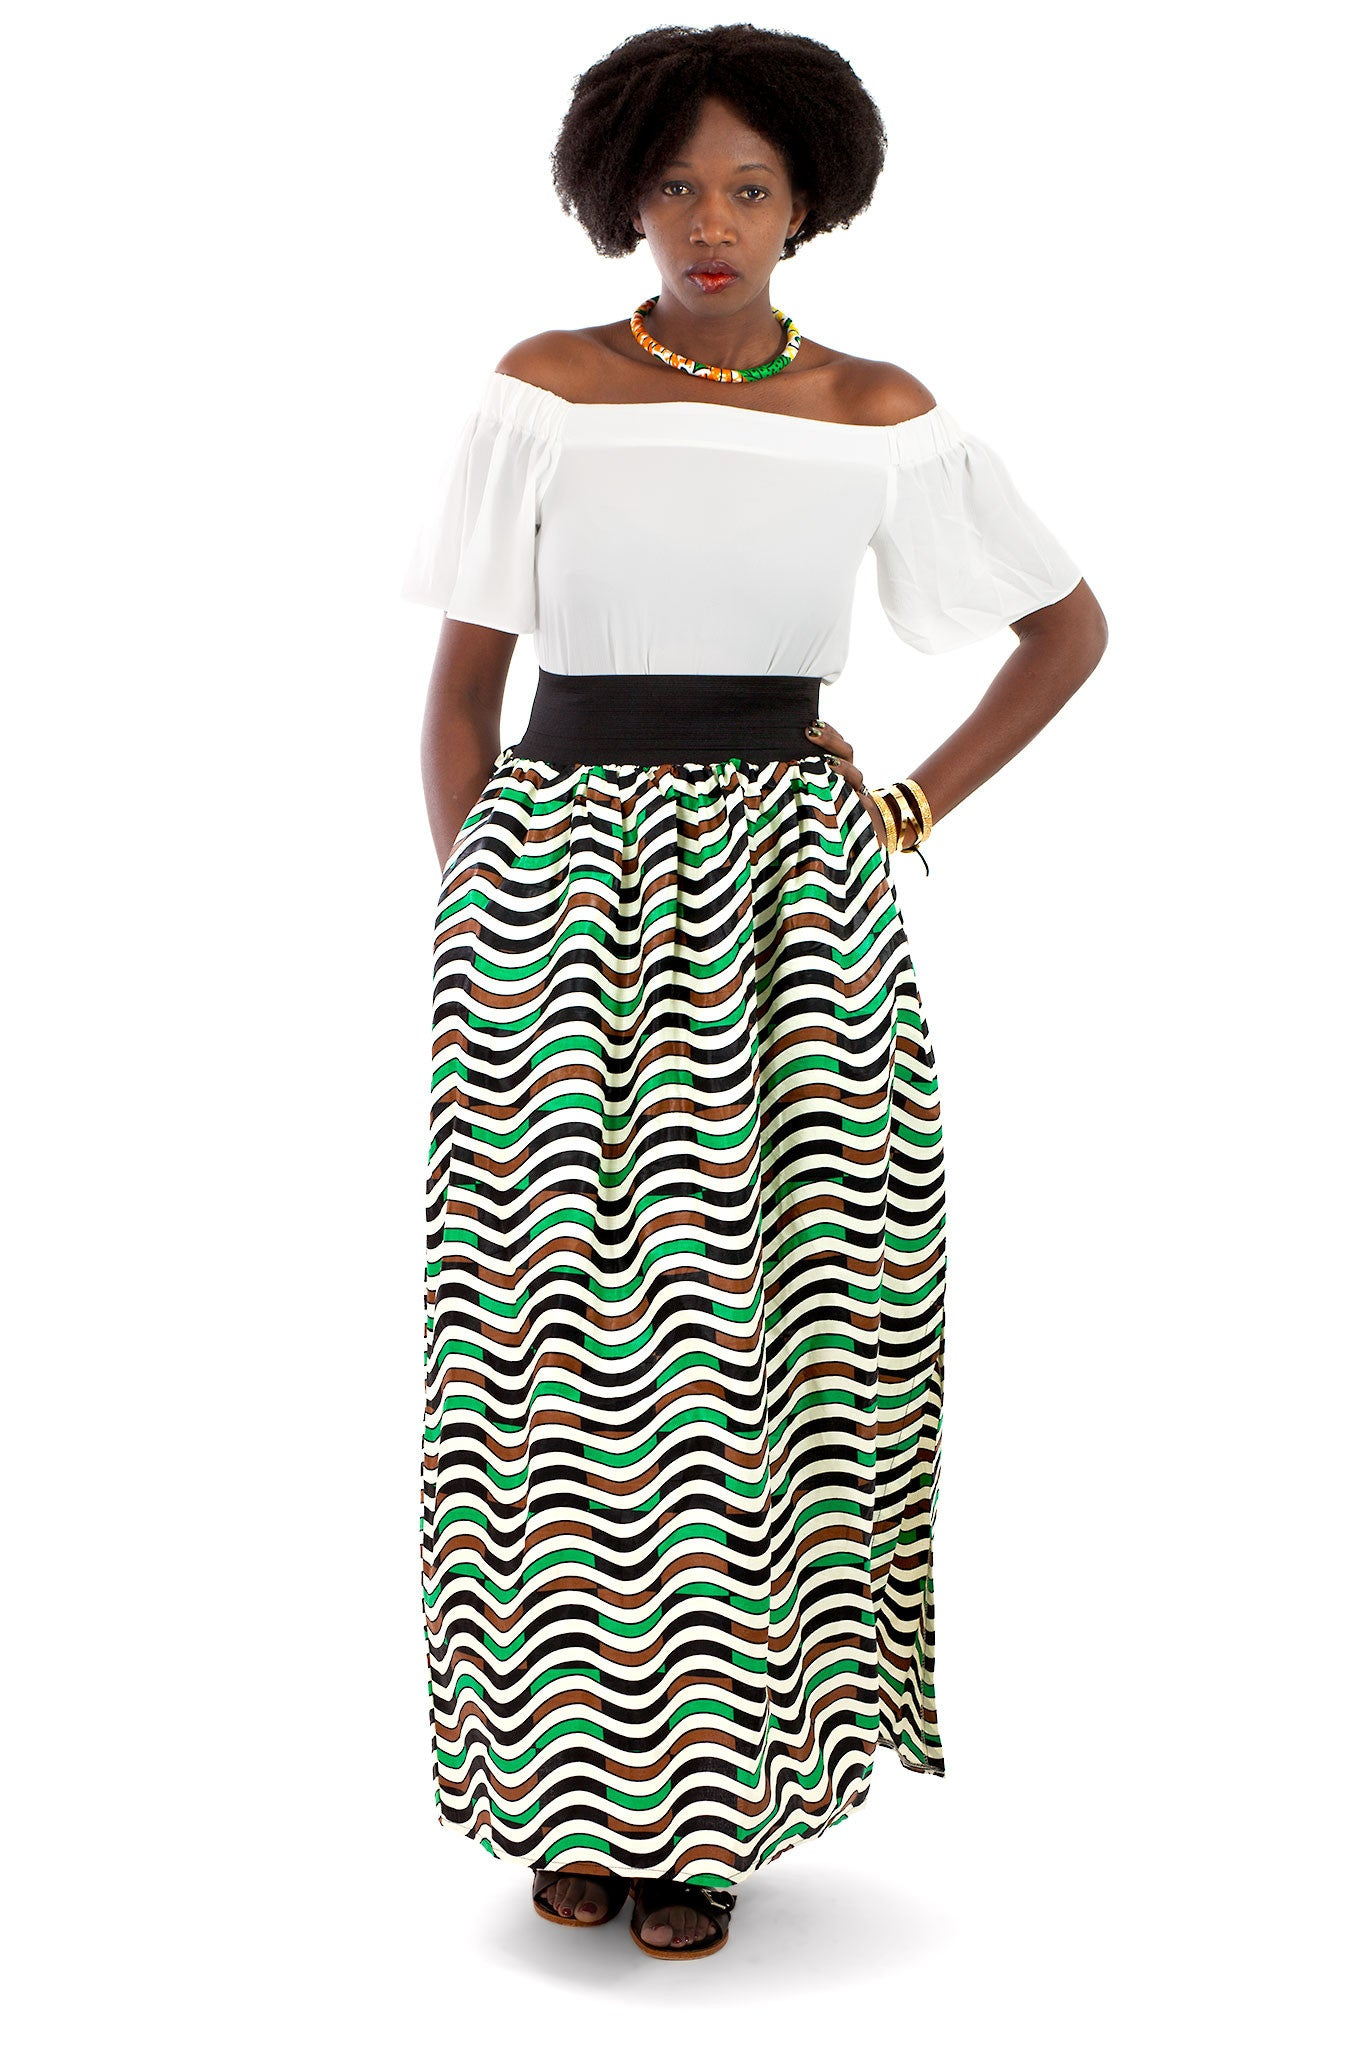 African Maxi Skirt - Green, White, Brown Waves Print - Africas Closet